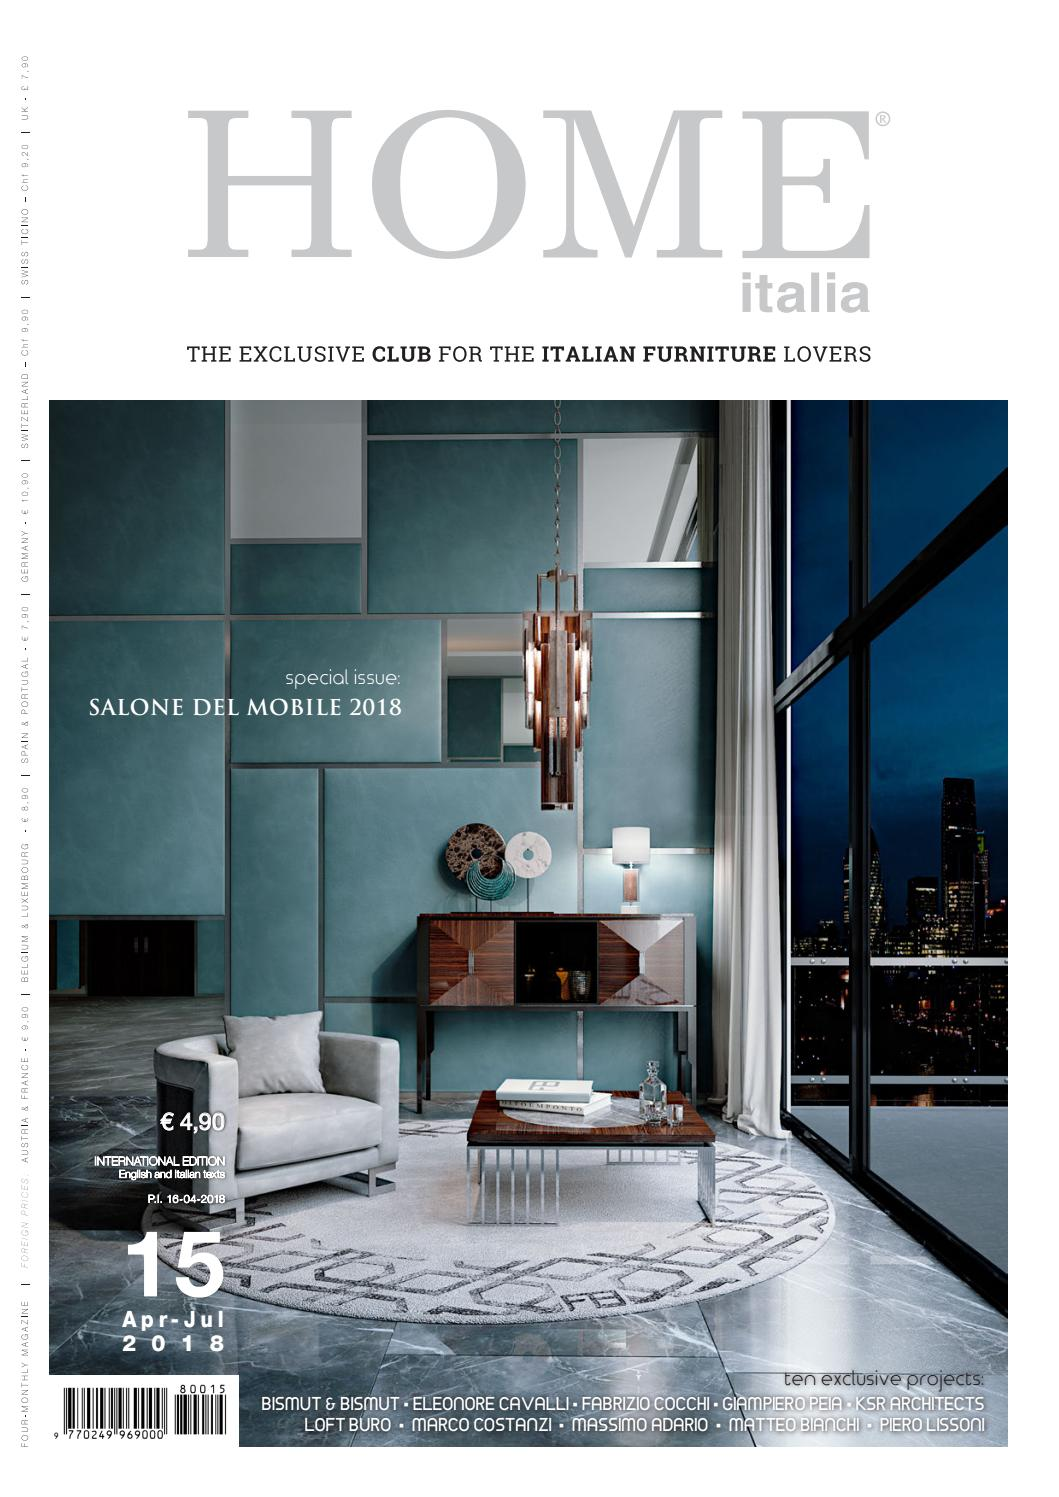 Lavorano Spesso Alle Finestre home italia 15th edition by home italia - issuu